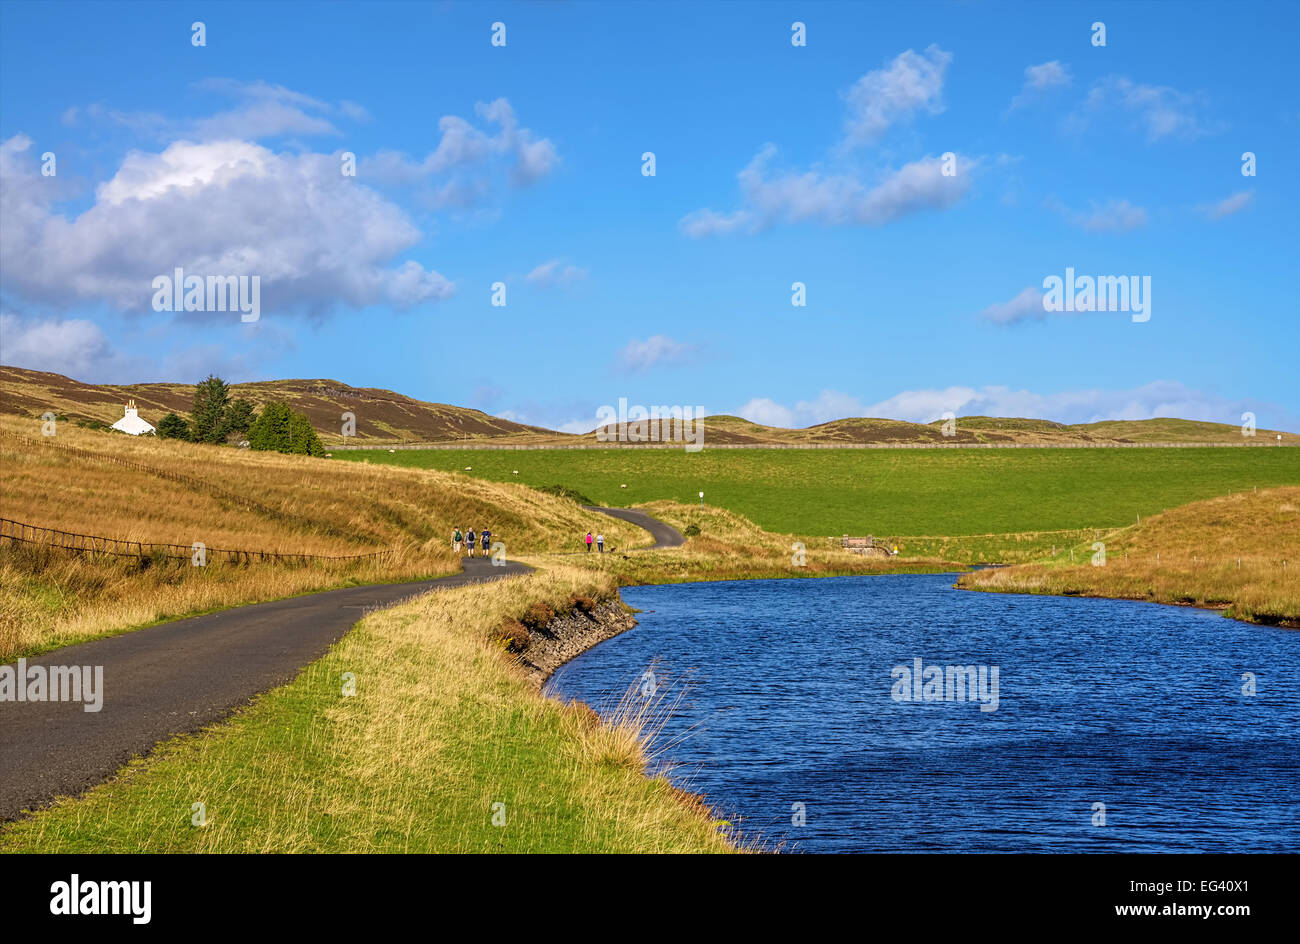 Hiking trail in Inverclyde - Stock Image